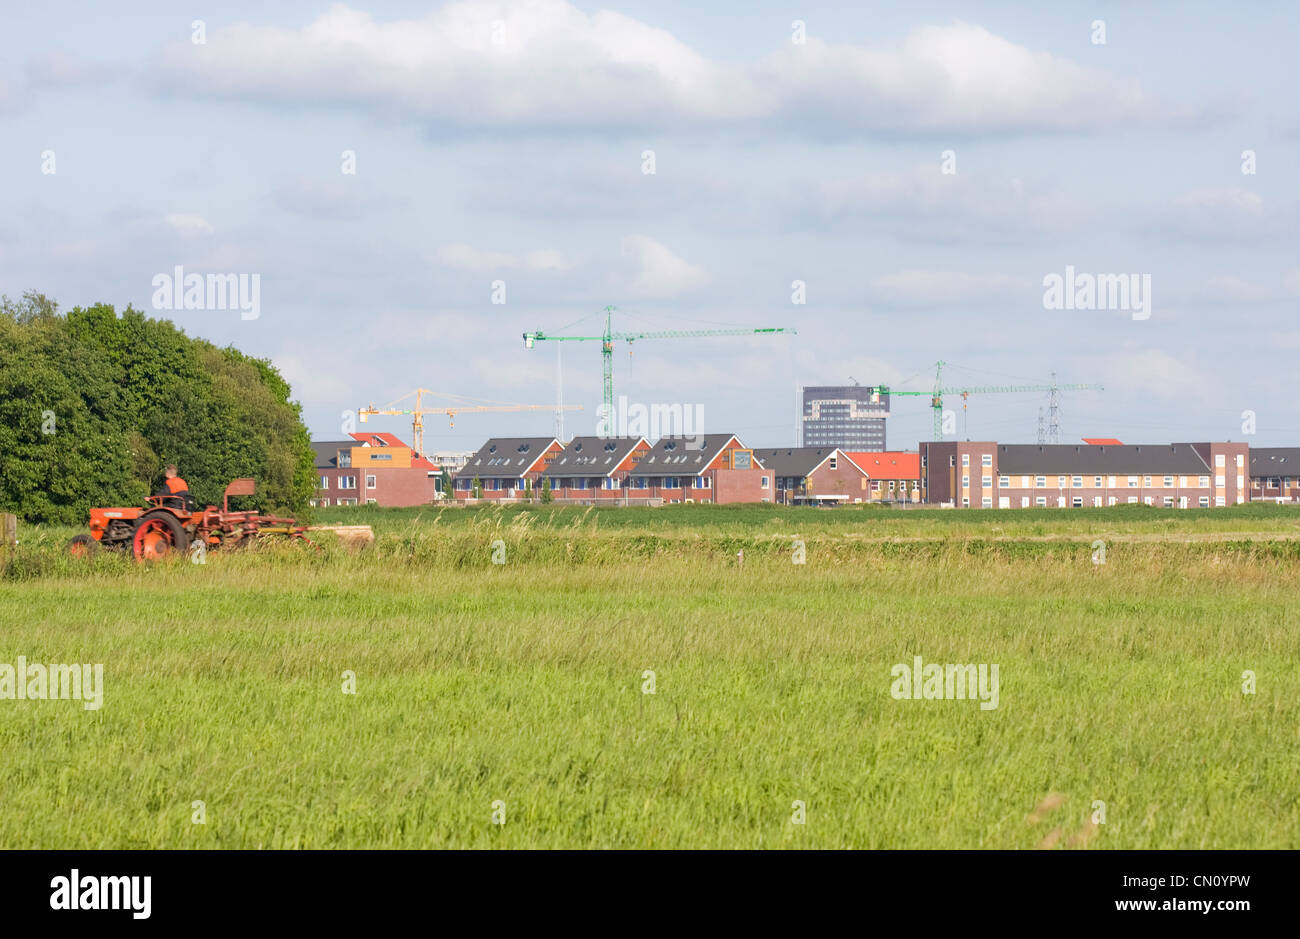 Urbanization: the city is growing, absorbing the rural area. - Stock Image